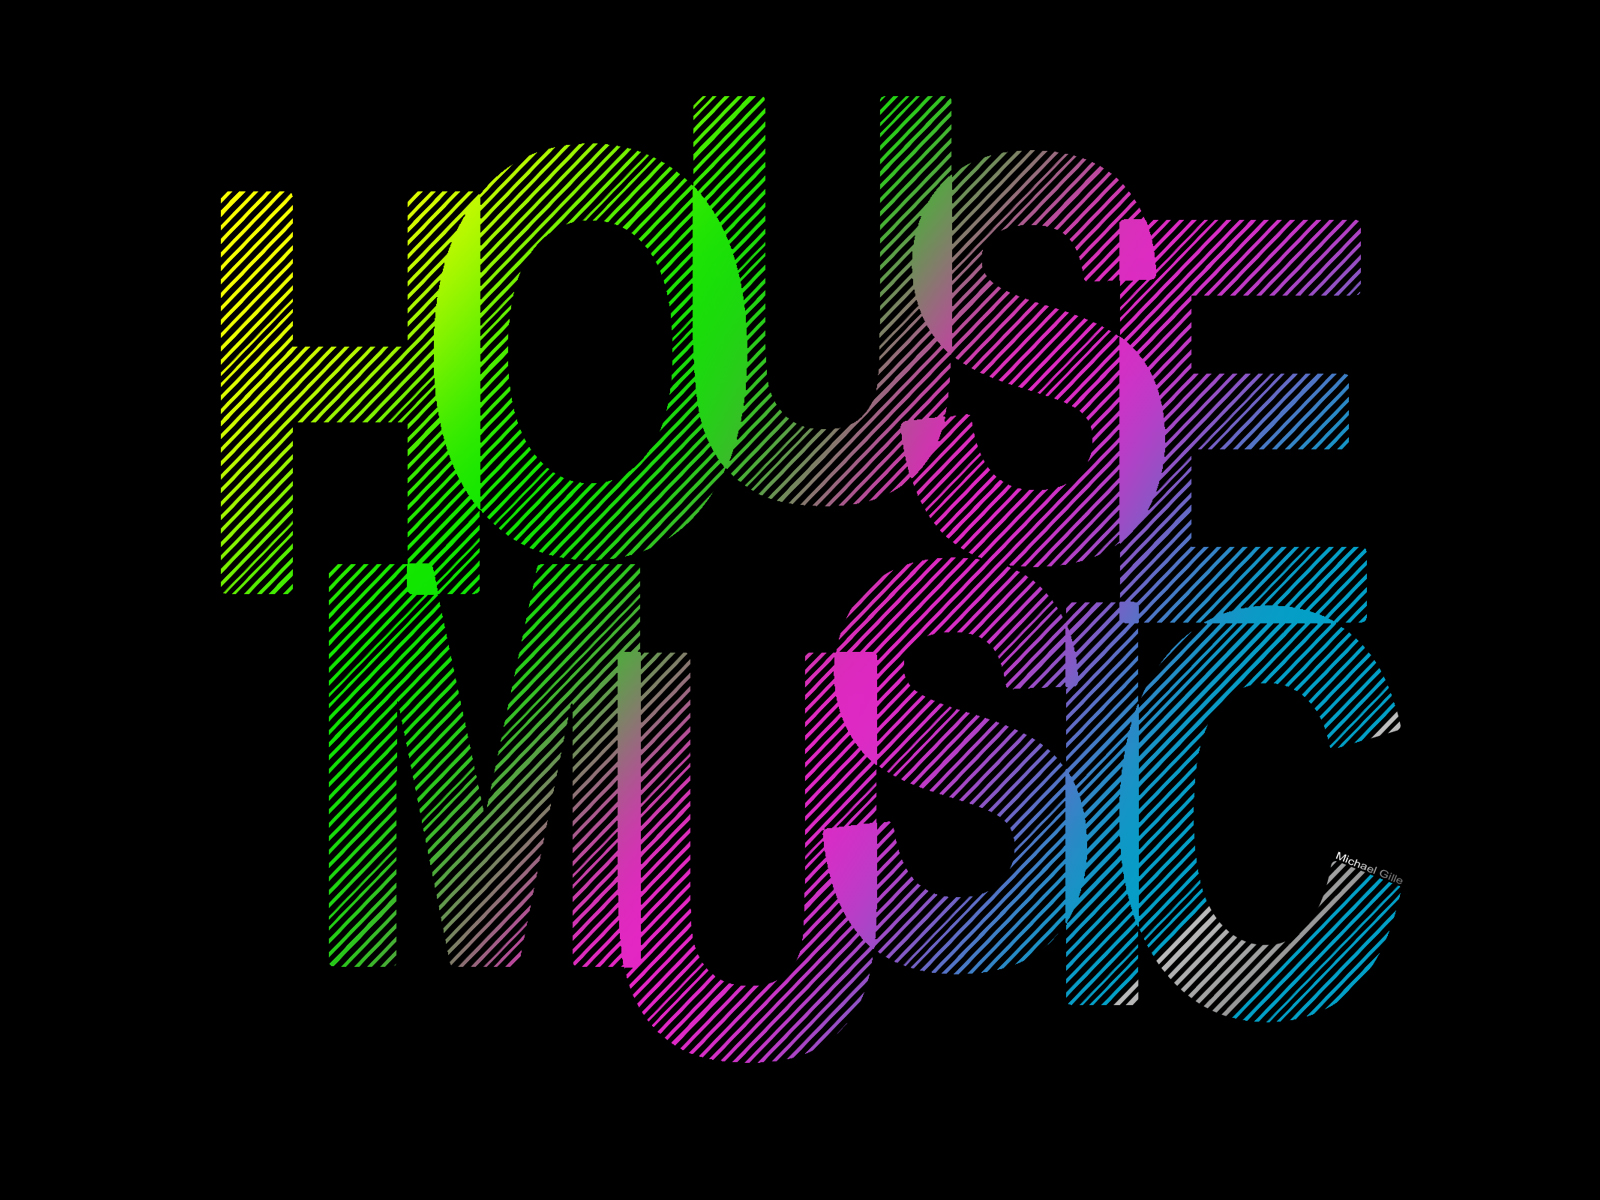 Shut up and enjoy the music for House music fashion